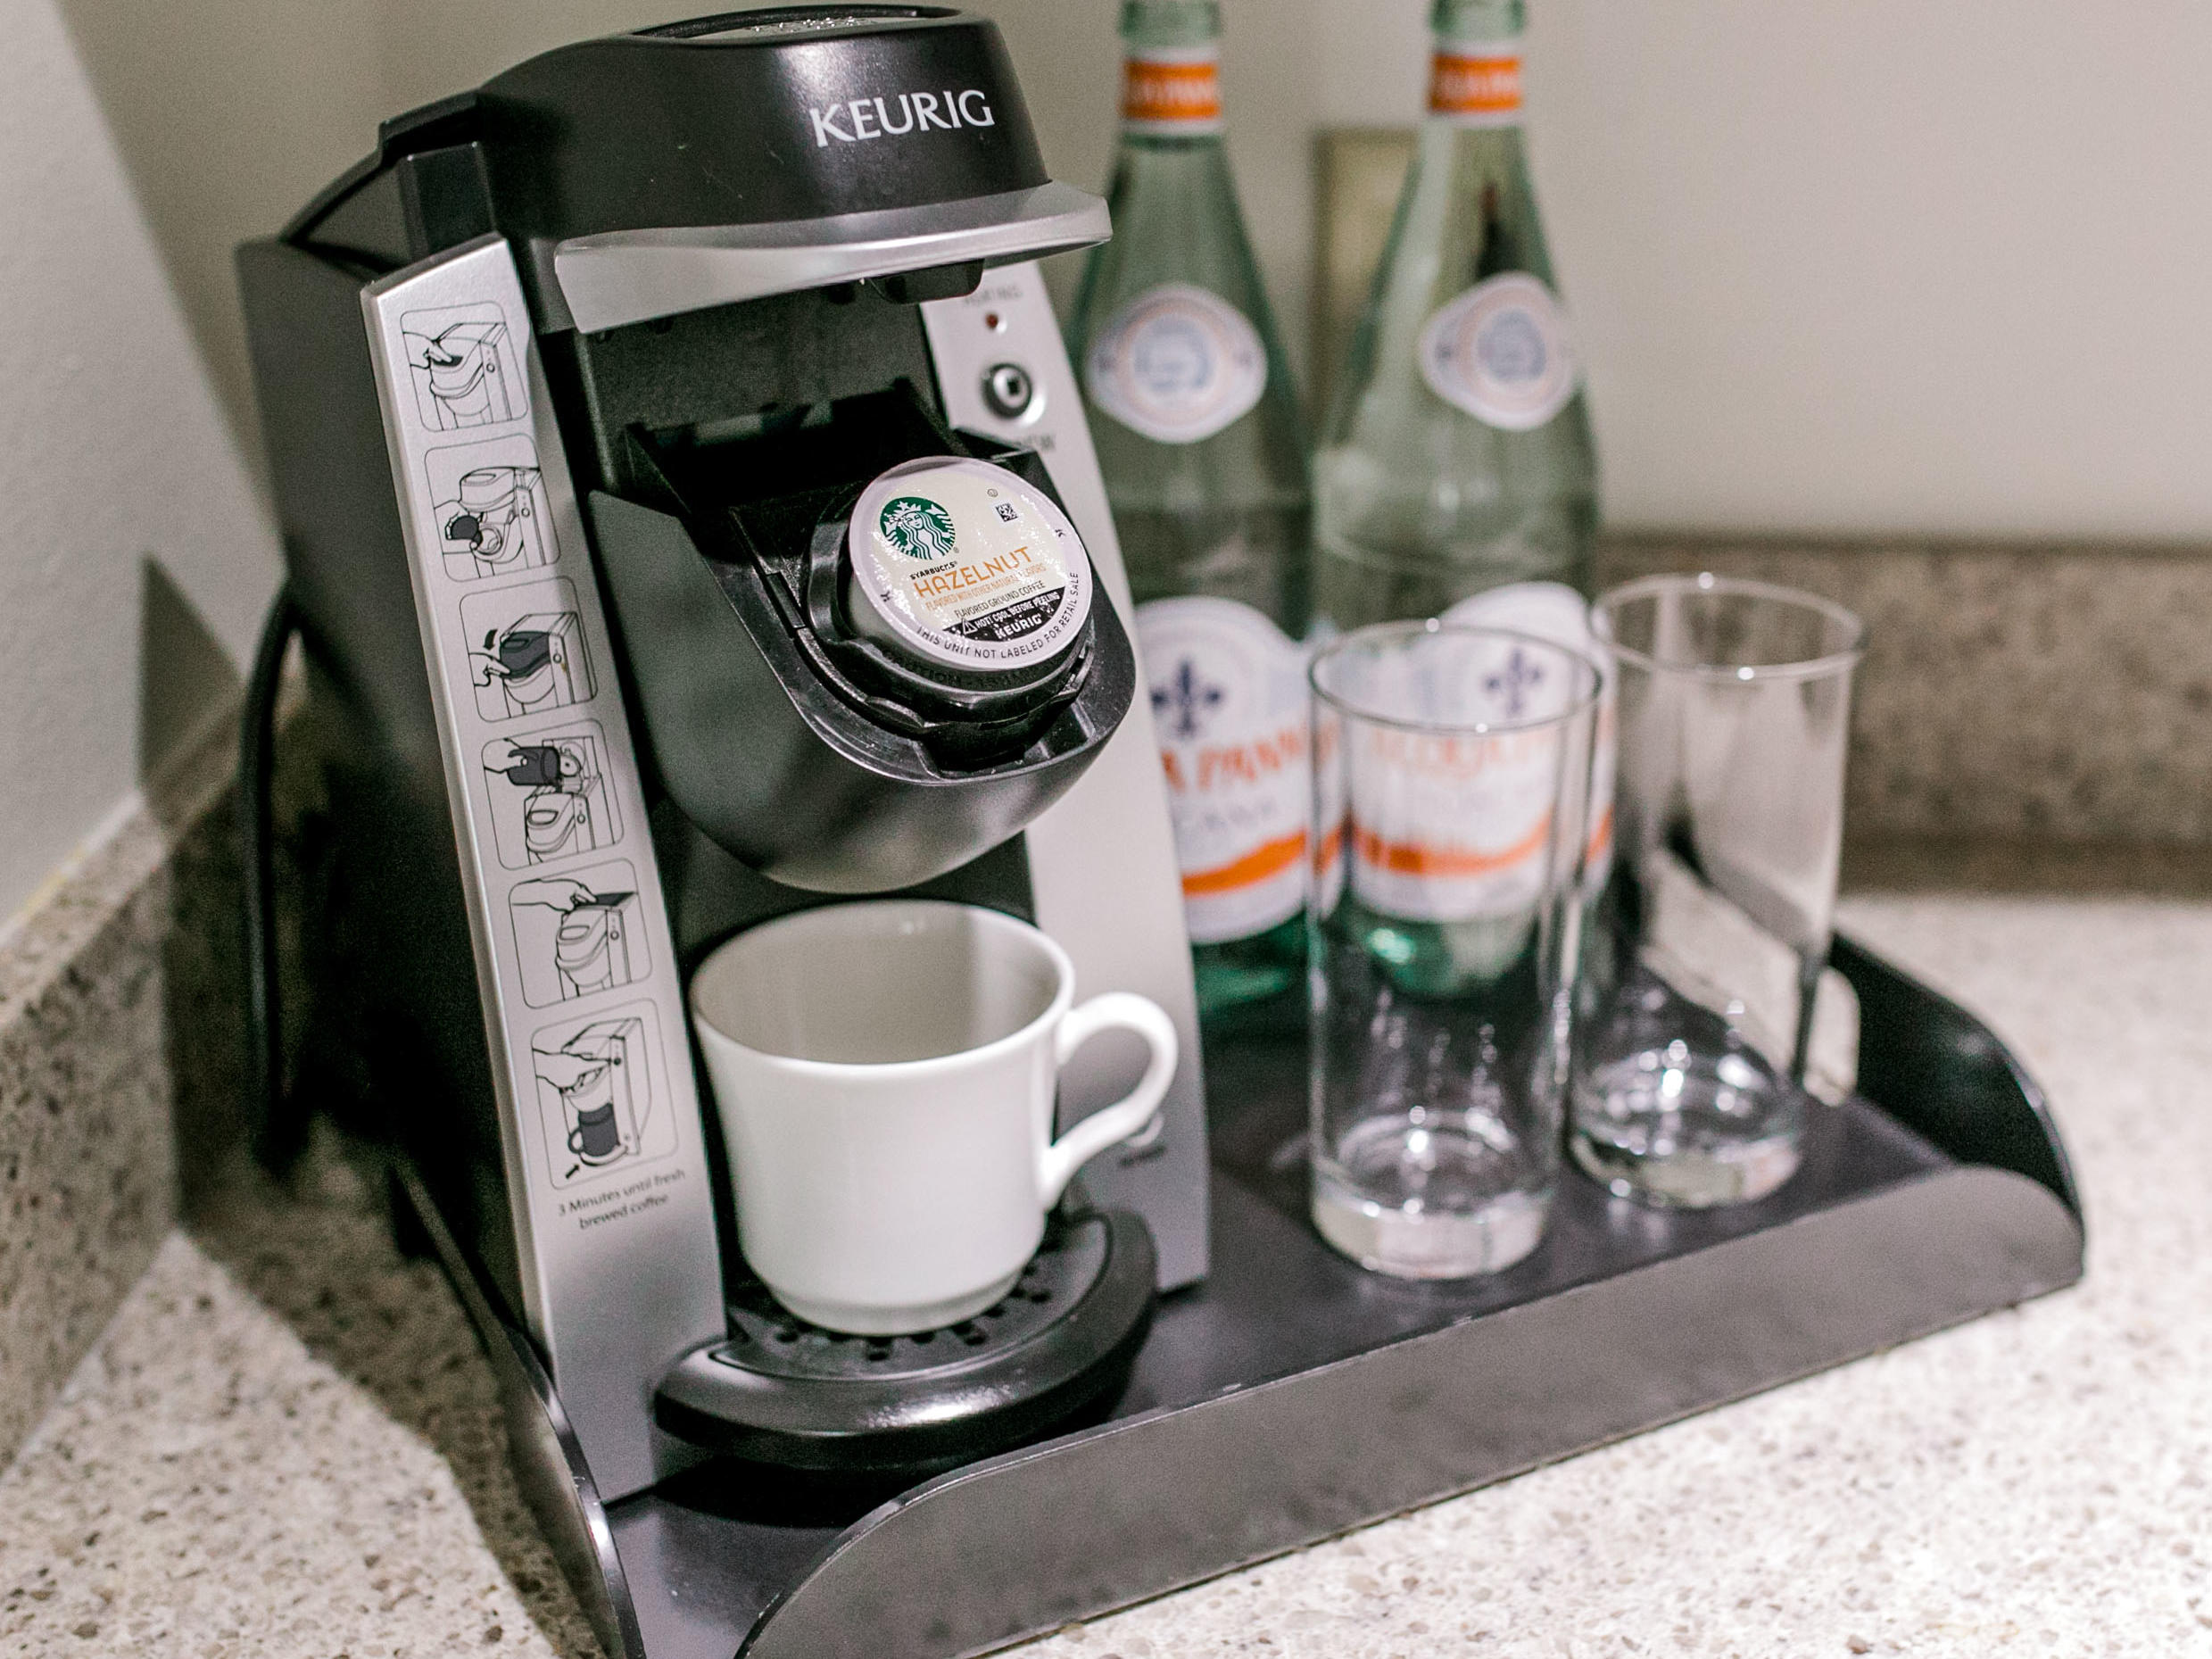 Keurig Coffe System with kcup, coffee mug, and water